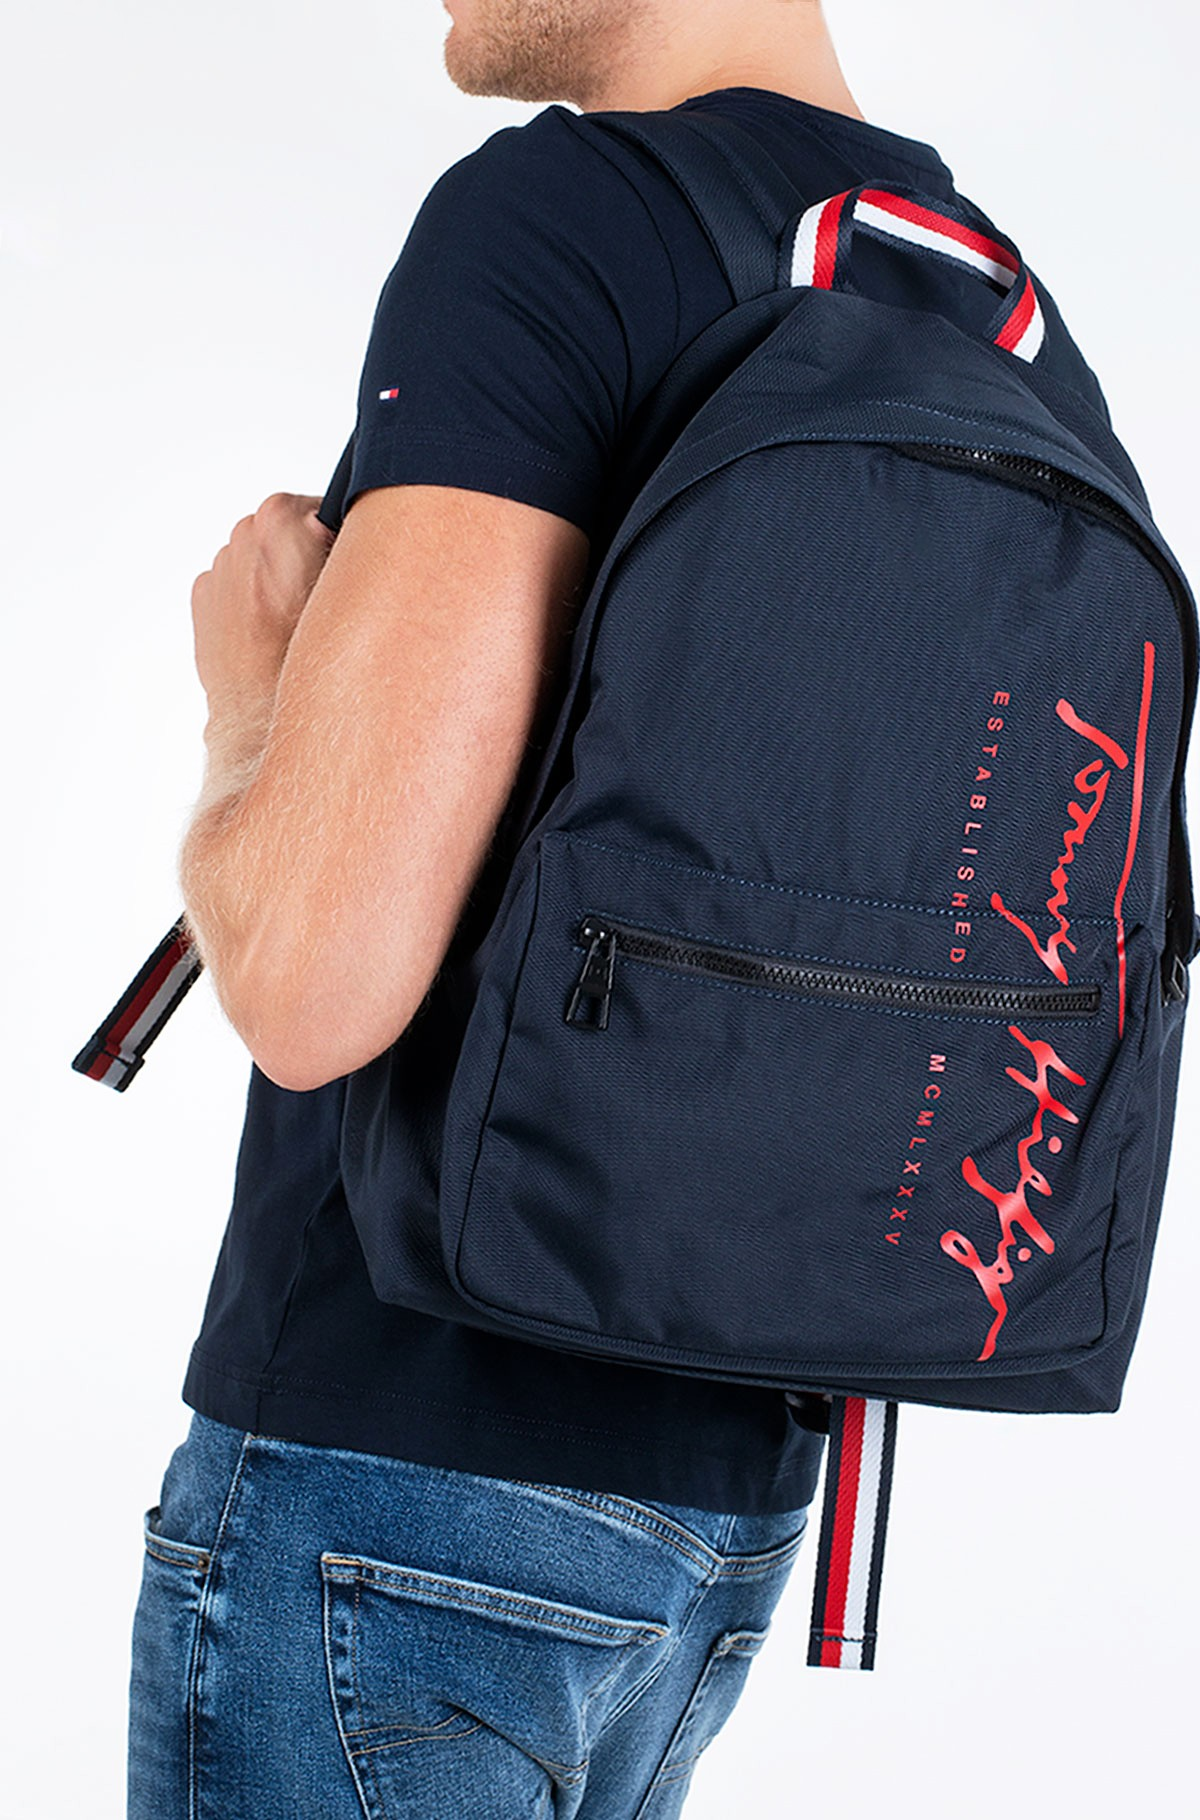 Kuprinė TH SIGNATURE BACKPACK-full-1